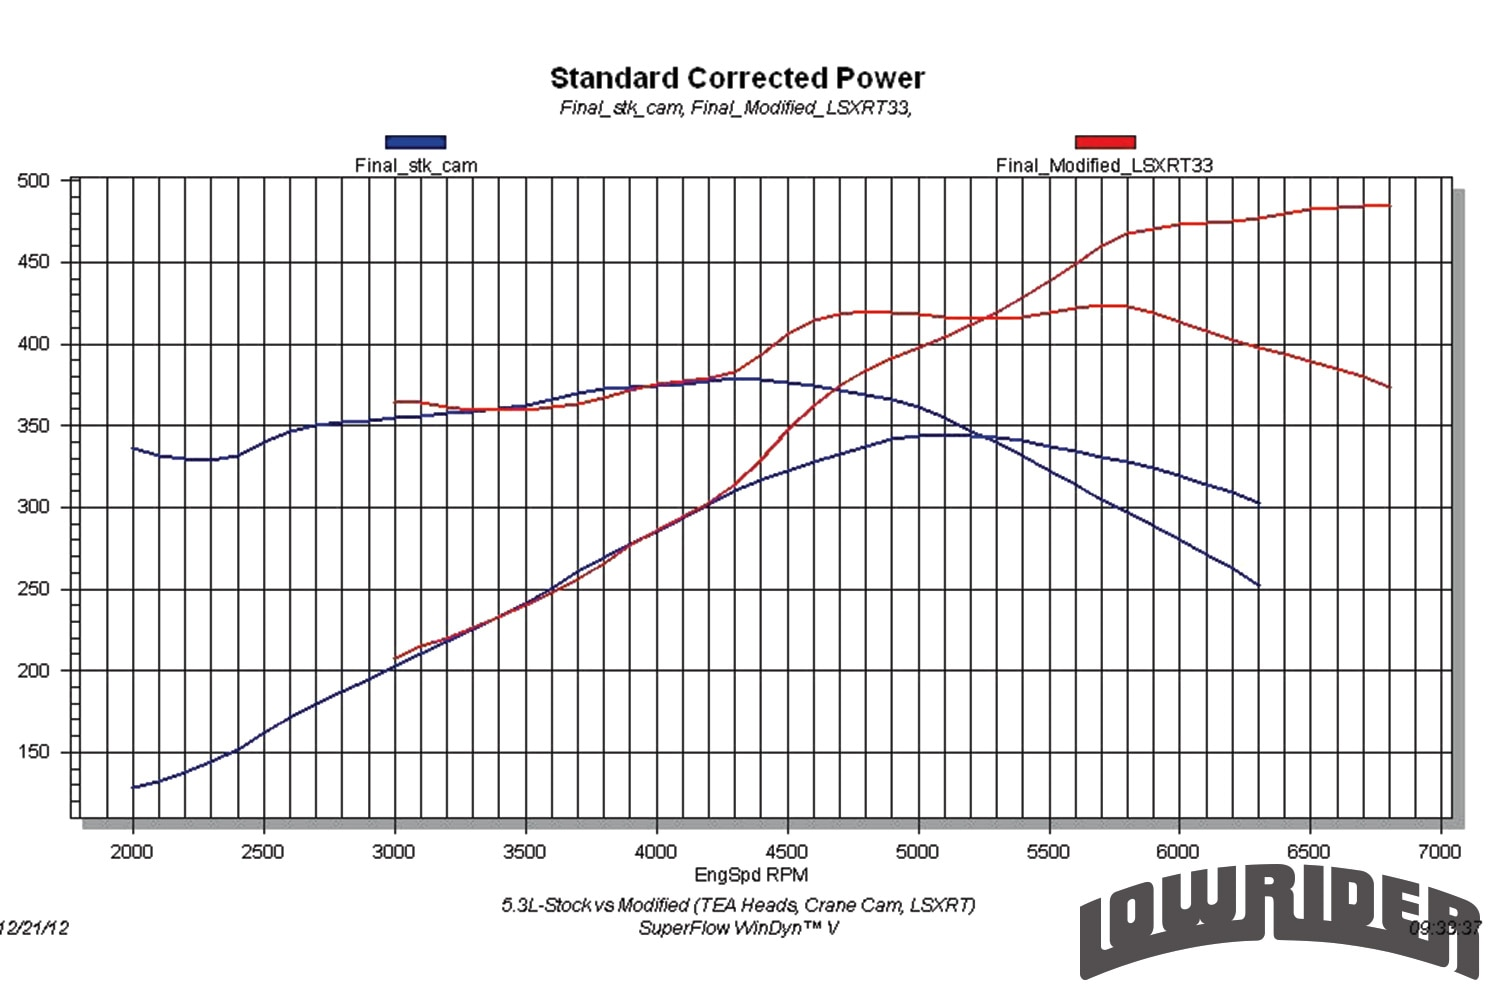 <strong>14</strong>. 5.3L Stock vs. Modified the results were nearly identical on the slightly larger 5.3L. In stock trim, the 5.3L produced 344 hp at 5,100 rpm and 379 lb-ft of torque at 4,300 rpm. After adding the same TEA heads, Crane 224/232 cam and Fast LSXRT intake, the peak power numbers jumped to 484 hp at 6,800 rpm and 424 lb-ft at 5,700 rpm. Like the 4.8L, the 5.3L lost no power even down at 3,000 rpm, but the gains exceeded 150 hp past 6,000 rpm.